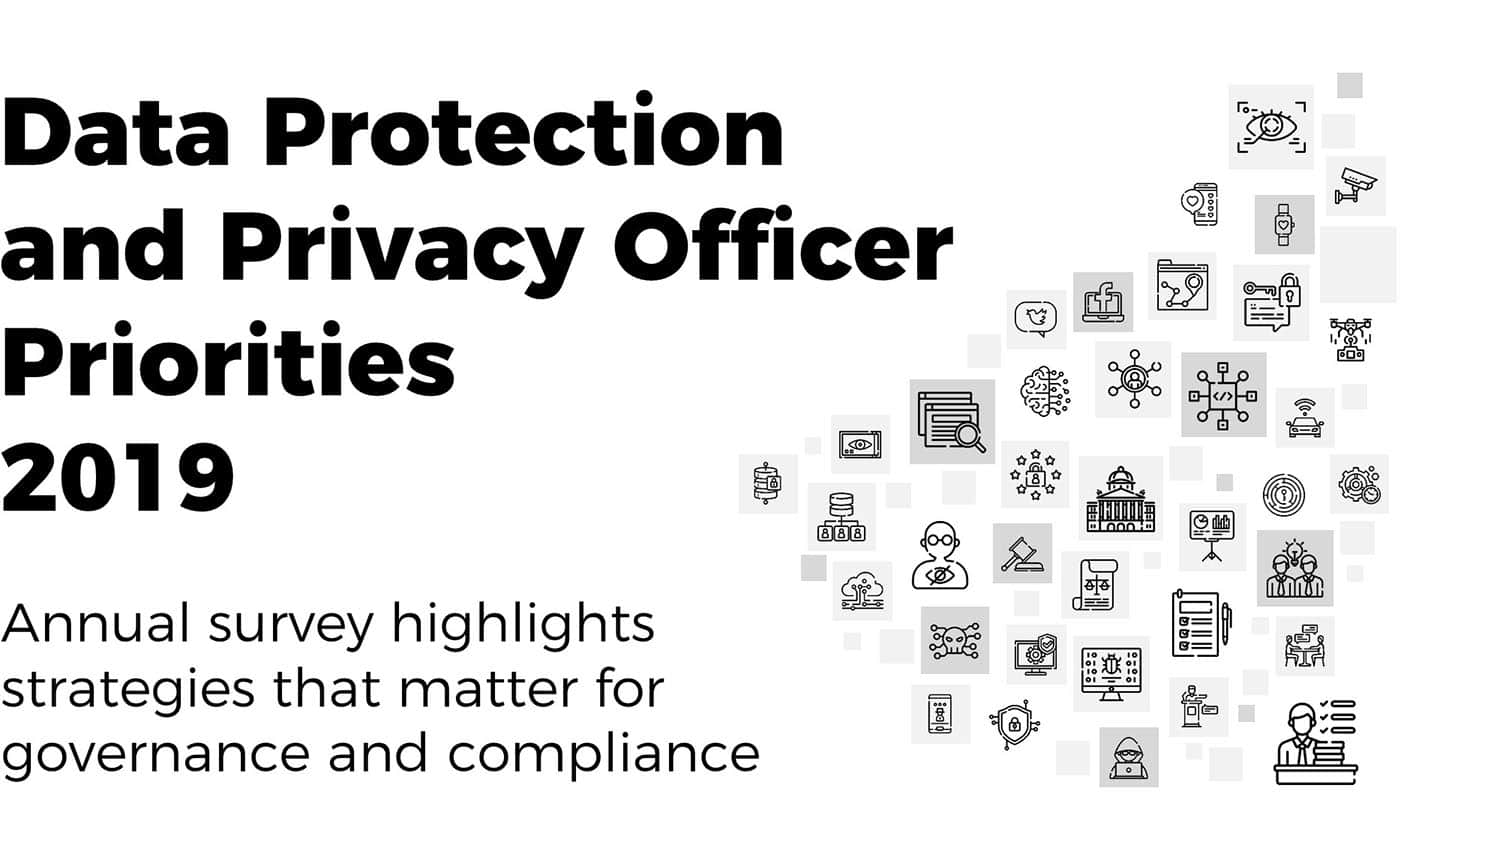 Data Protection and Privacy Officer Priorities 2019